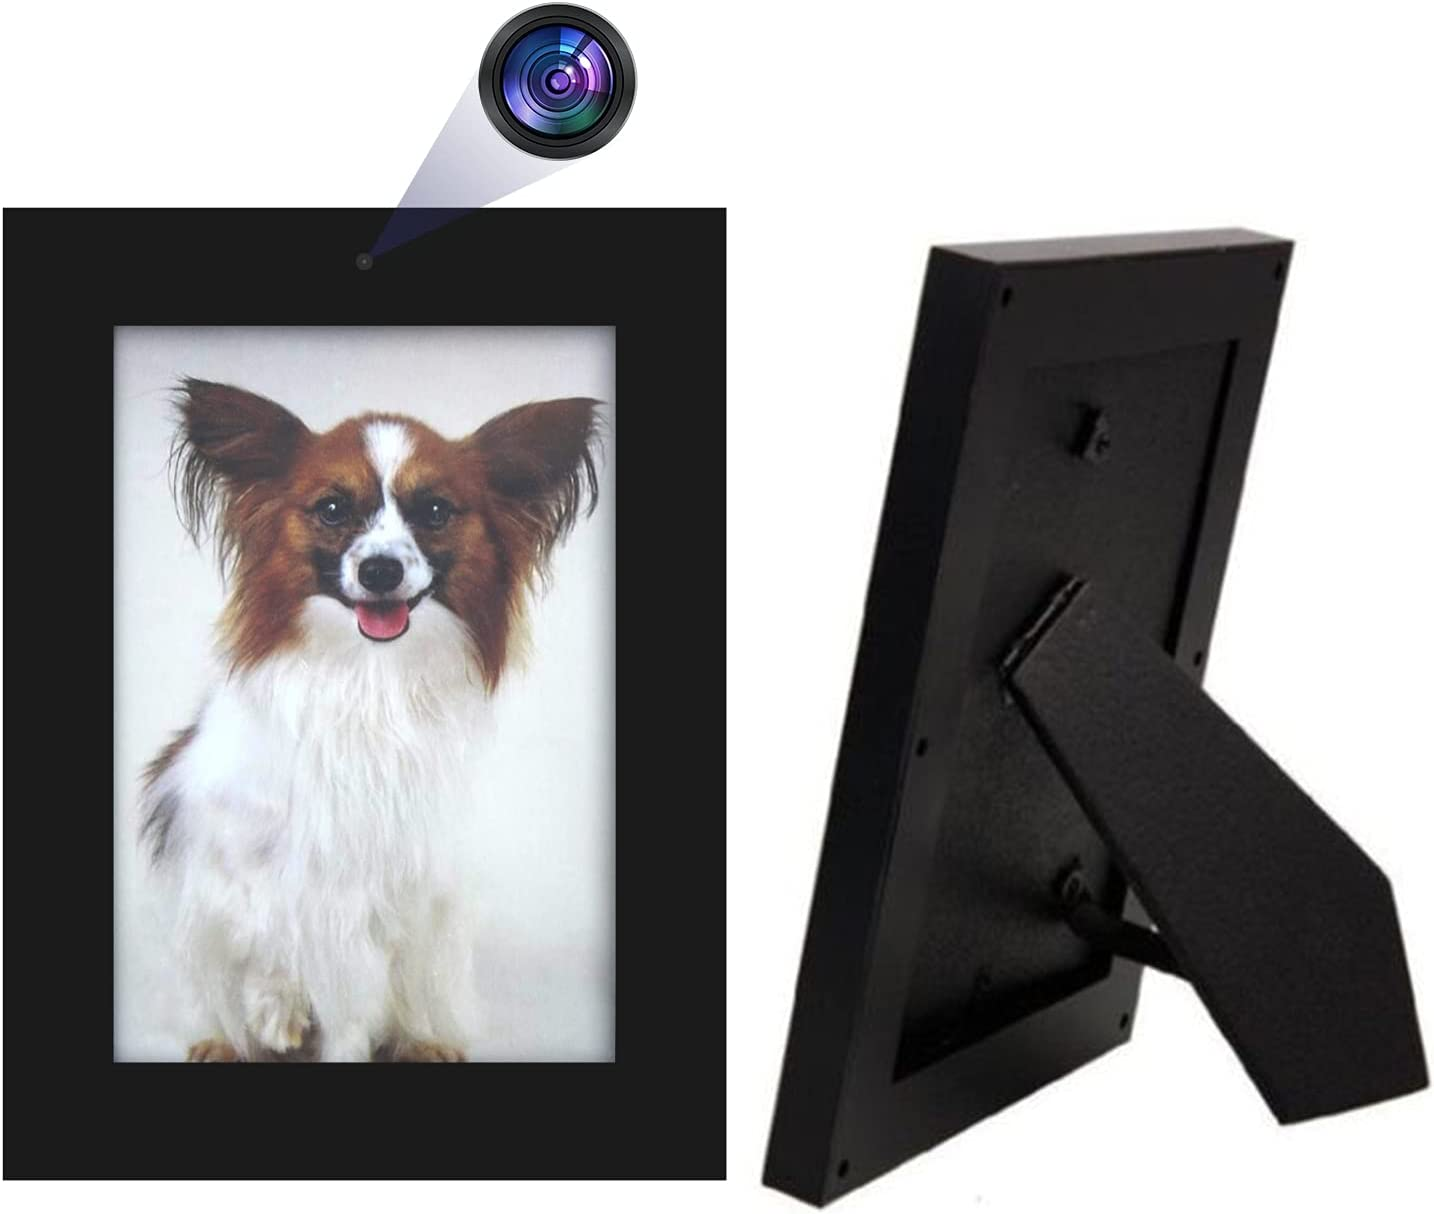 Hidden Camera, HD 1080P Photo Frame Spy Camera Home Security Wireless Nanny Cam Video Recorder with Motion Detection for Home and Office, No WiFi Function